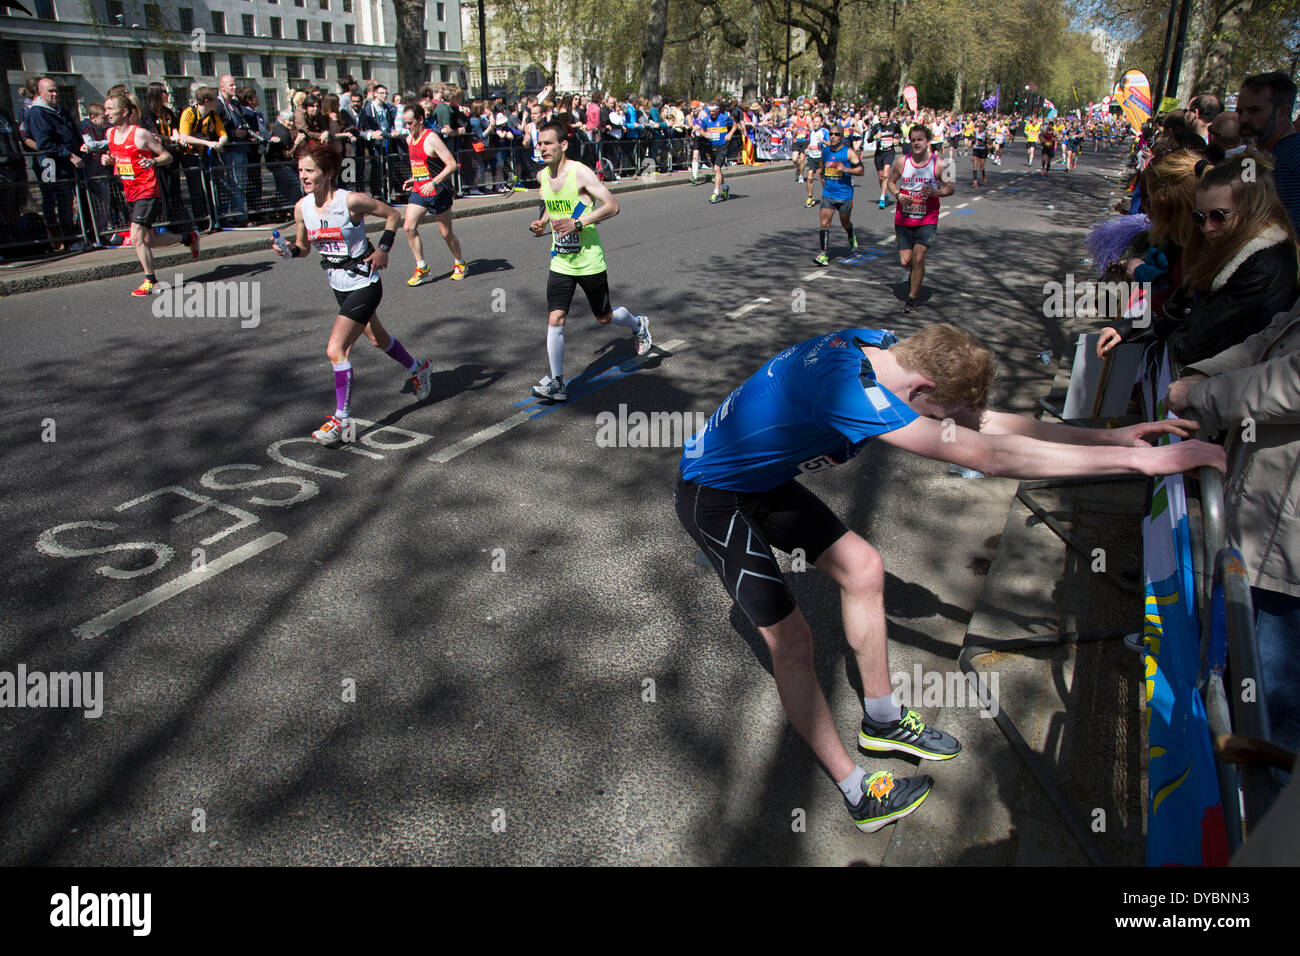 London, UK. 13th Apr, 2014. Competitors running in the main public event of the Virgin Money London Marathon 2014. These runners take part and raise huge sums fo money for charity organisations. Many runners at the later stages of the race suffer from cramp or other pain requiring stretching. Credit:  Michael Kemp/Alamy Live News - Stock Image